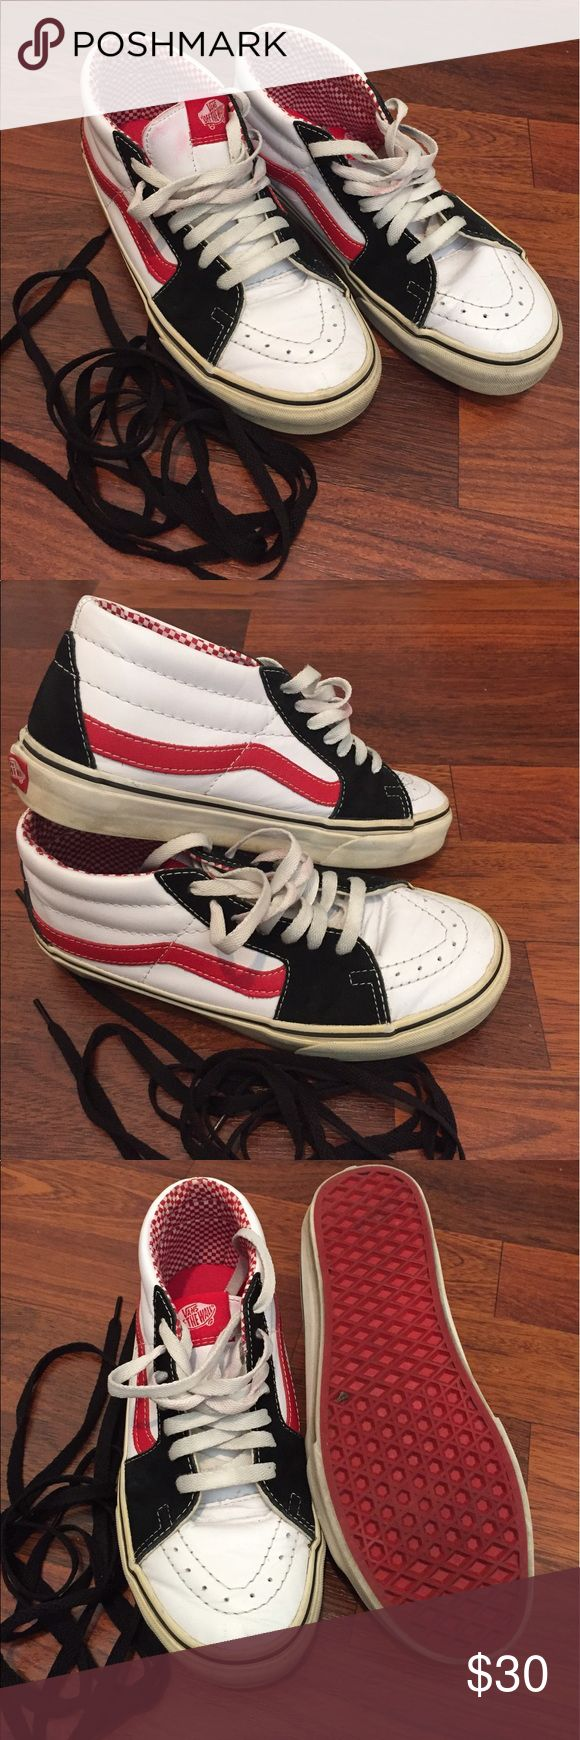 MOVING SALE! Need to get rid of in 2 wks! MAKE OFR Vans Sk8-Mid with extra pair of black laces men's 7.5/women's size 9 Vans Shoes Sneakers